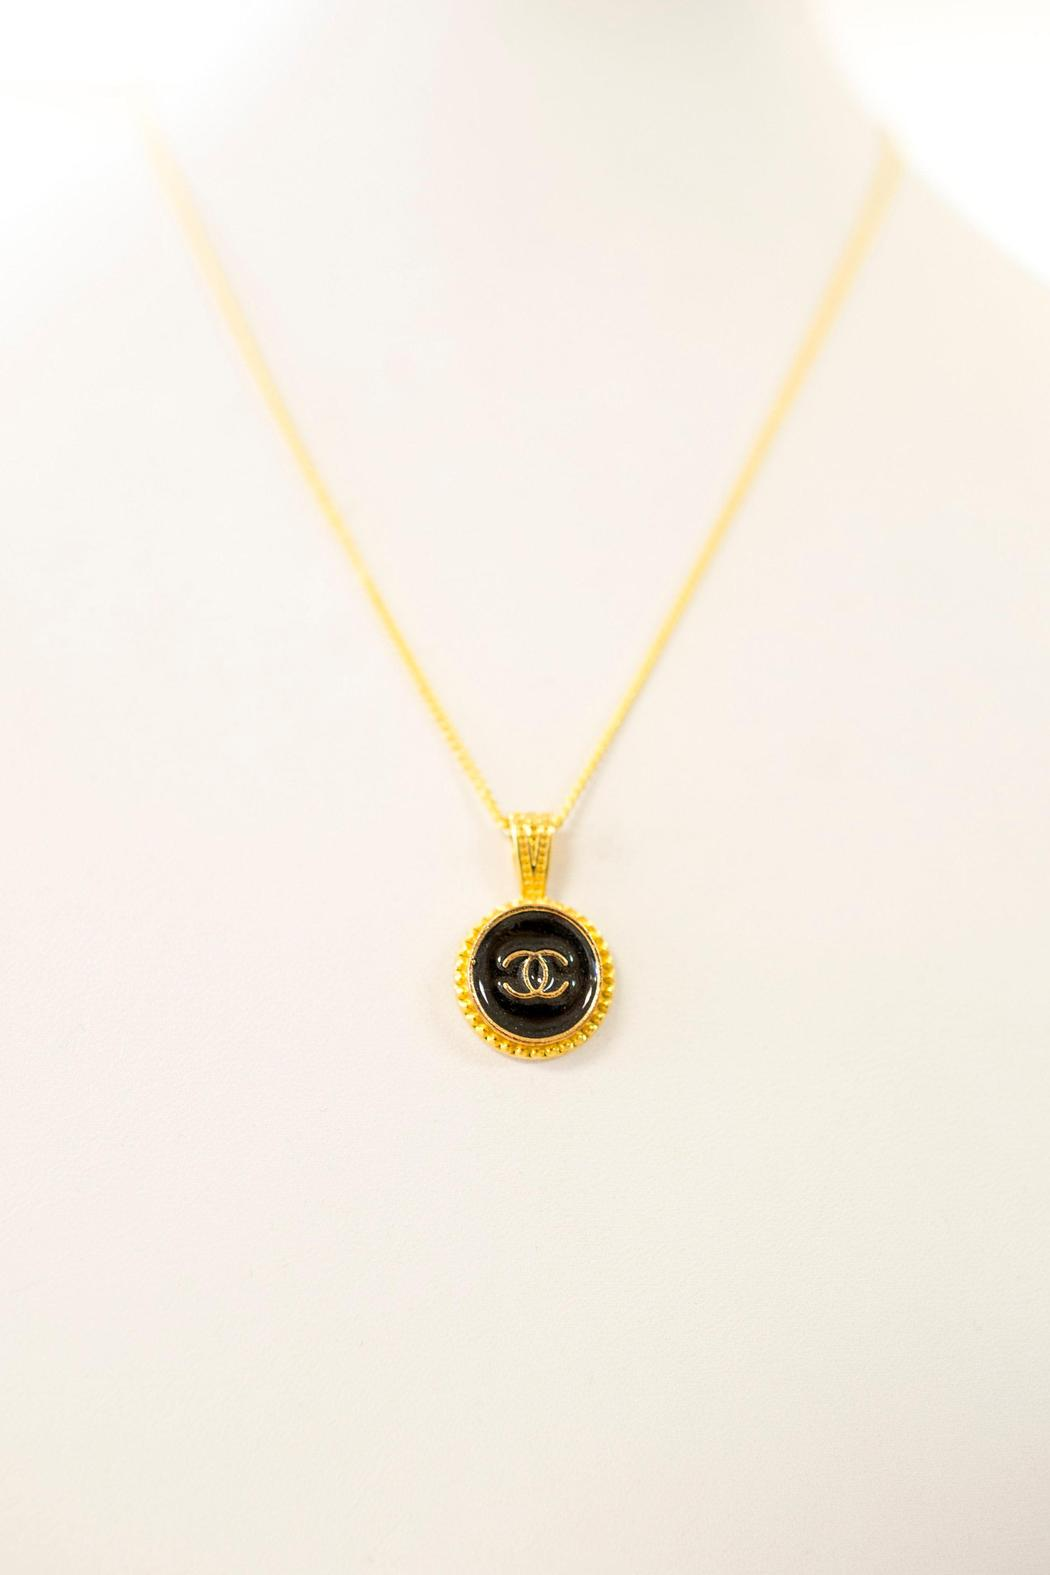 Recycled Vintage Couture Chanel Button Necklace from California by Bella At The ...